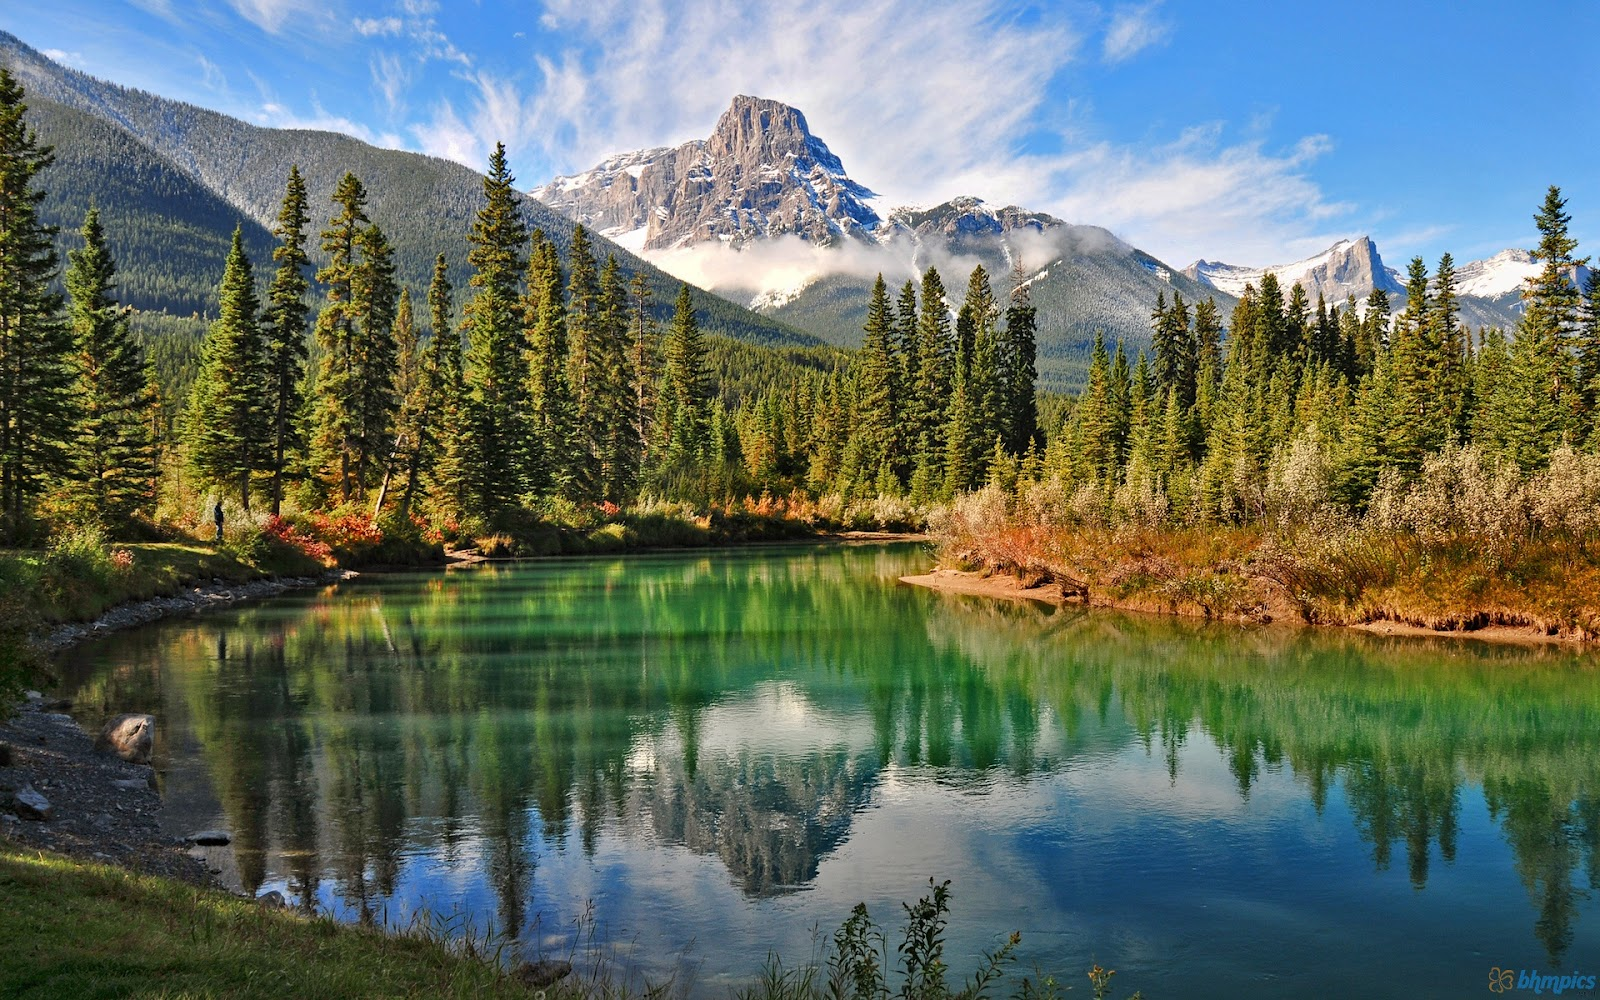 http://2.bp.blogspot.com/-8v41d3hKe8I/UCJ96ENh7EI/AAAAAAAAClY/9OFzpAcf1v8/s1600/canmore_rocky_mountains-1920x1200.jpg